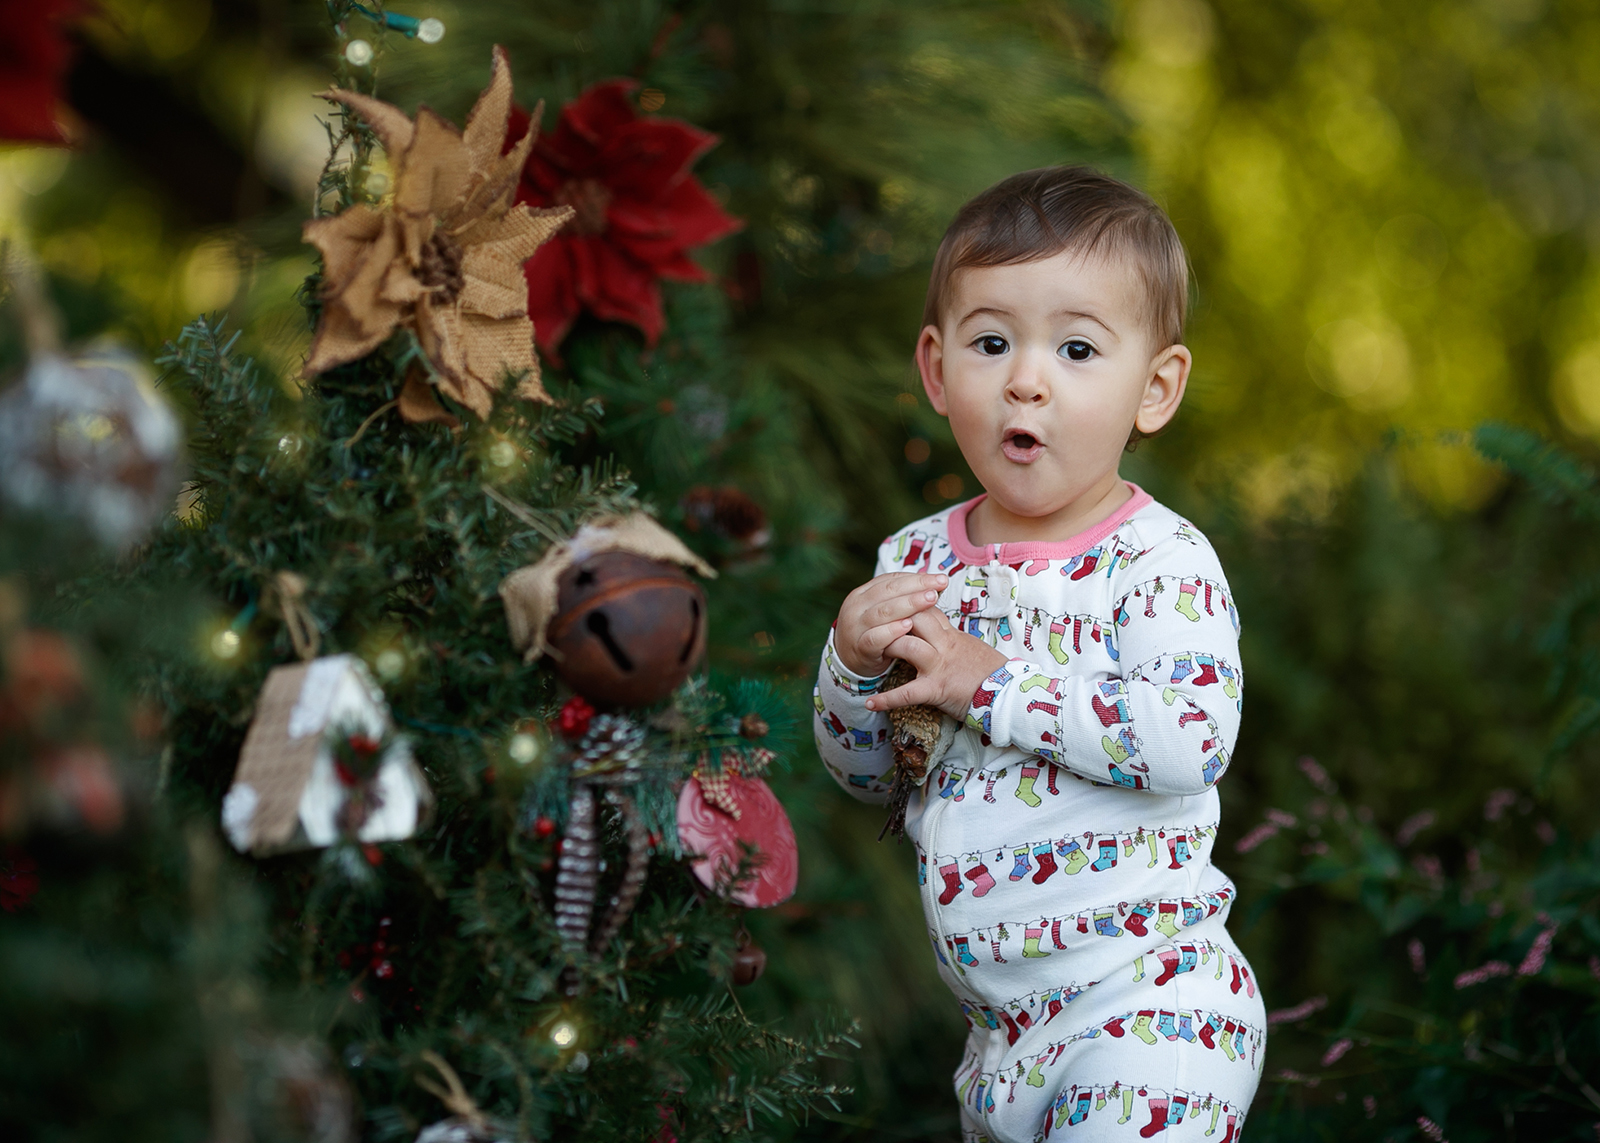 Christmas Mini Sessions.Christmas Portraits At Michelle Studios Michelle Studios